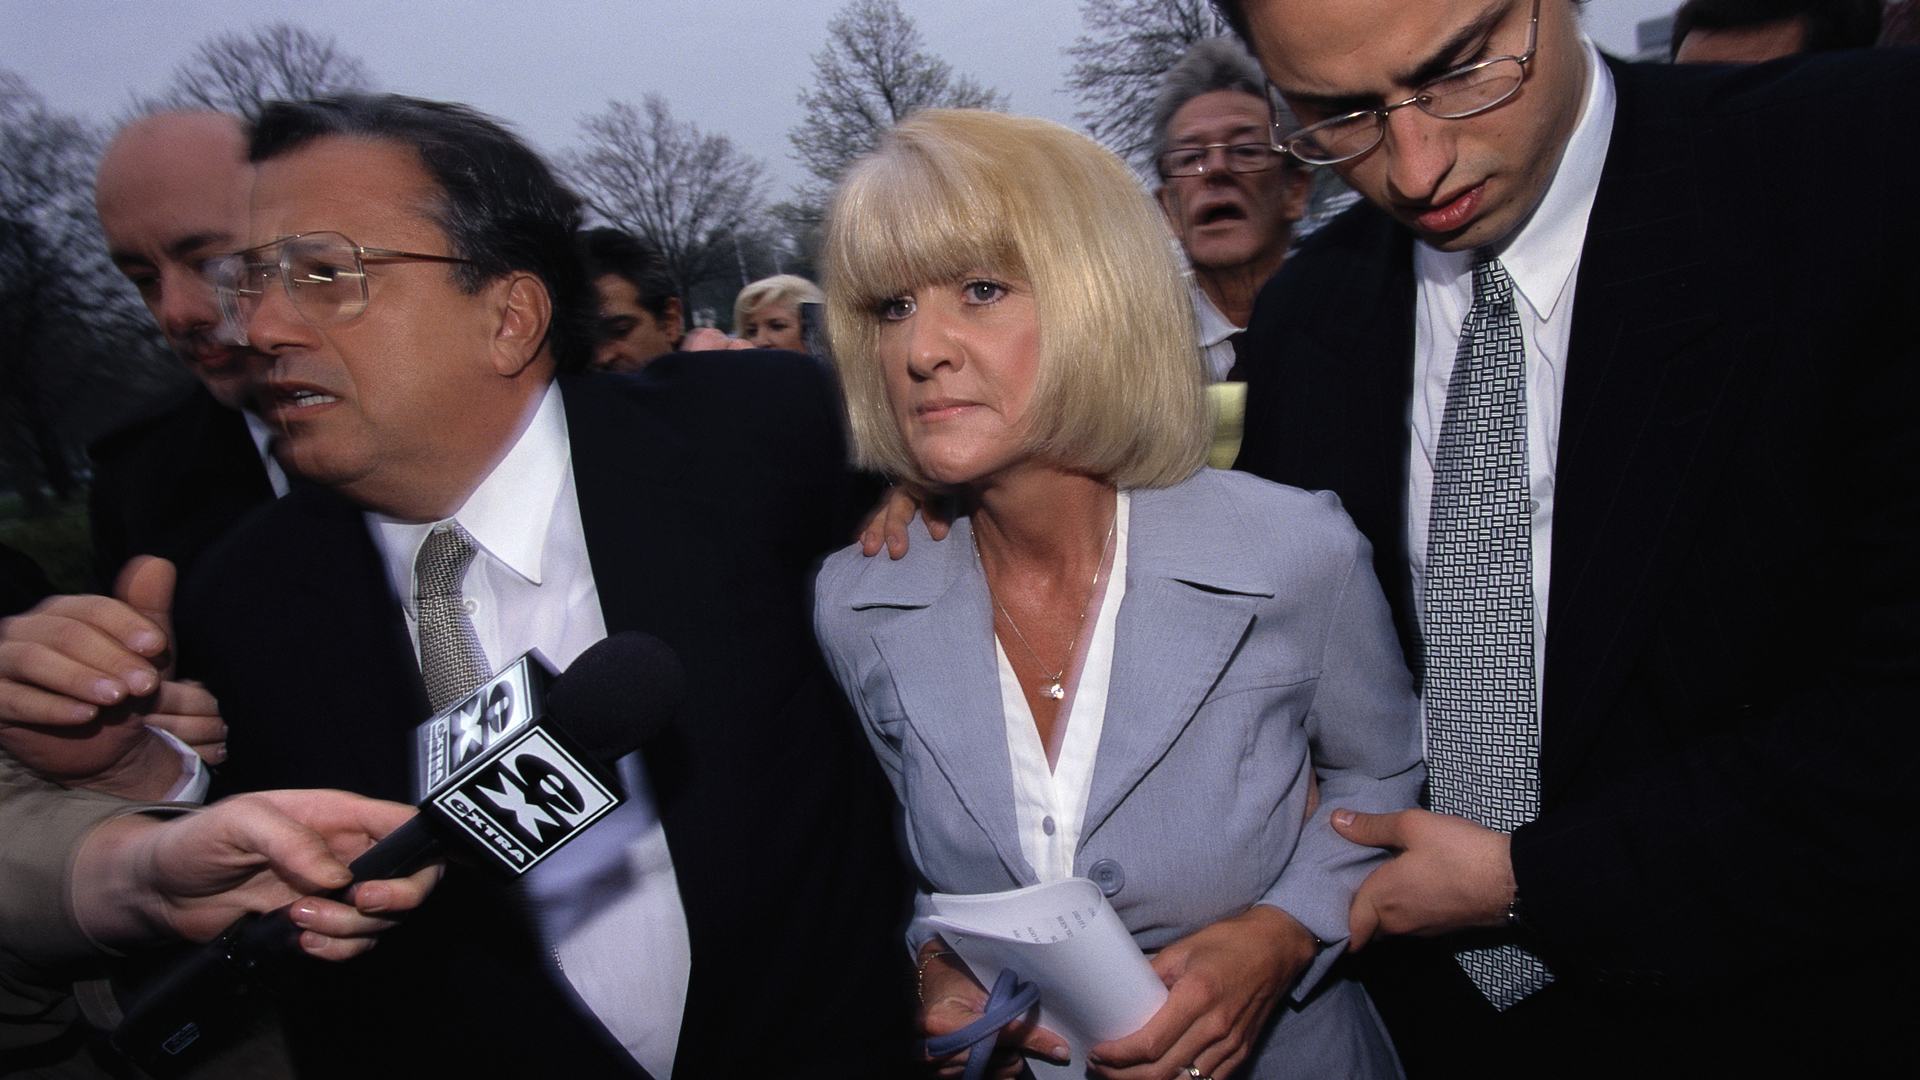 Mary Jo Buttafuoco, victim of Amy Fisher